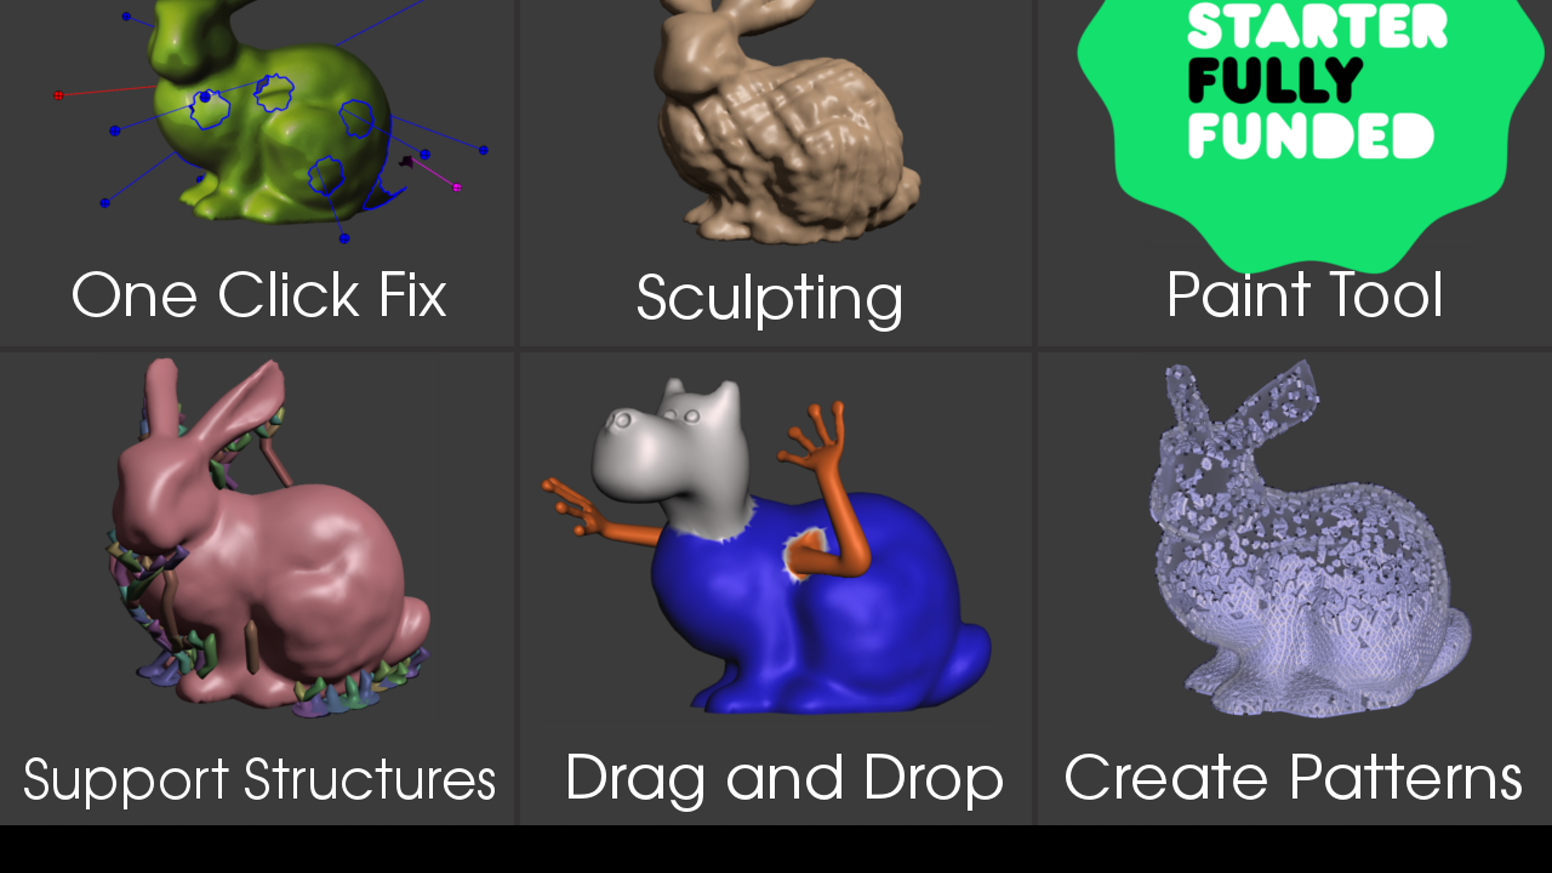 """Expert tutorials on Autodesk's FREE """"Easy-To-Use"""" Meshmixer software: 20+ Hrs, Mini Kid's Course,140+ Total Videos, 80+ Tools Explained"""